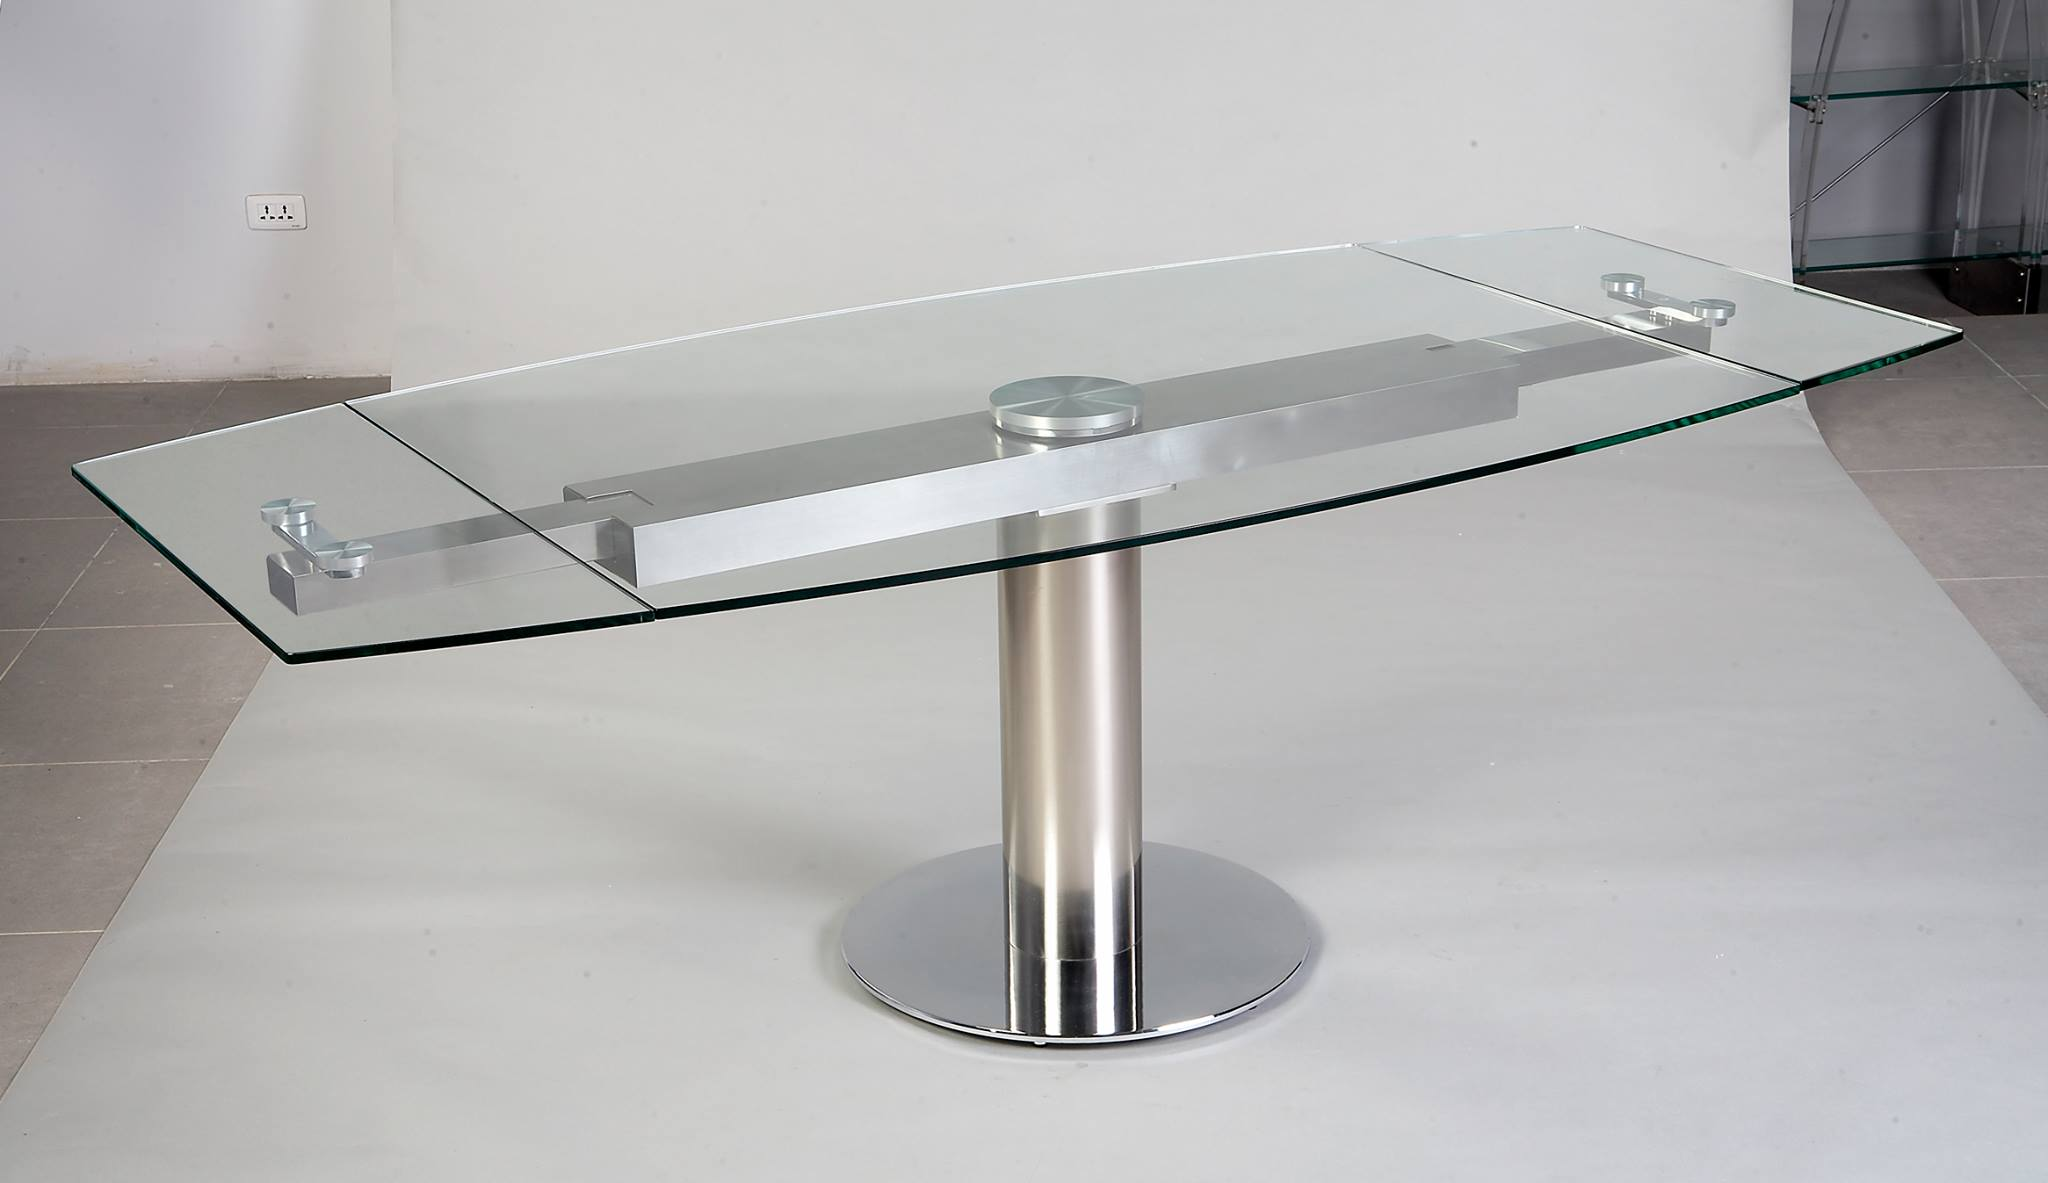 Table verre pied central allonge - Table de salle a manger avec pied central ...